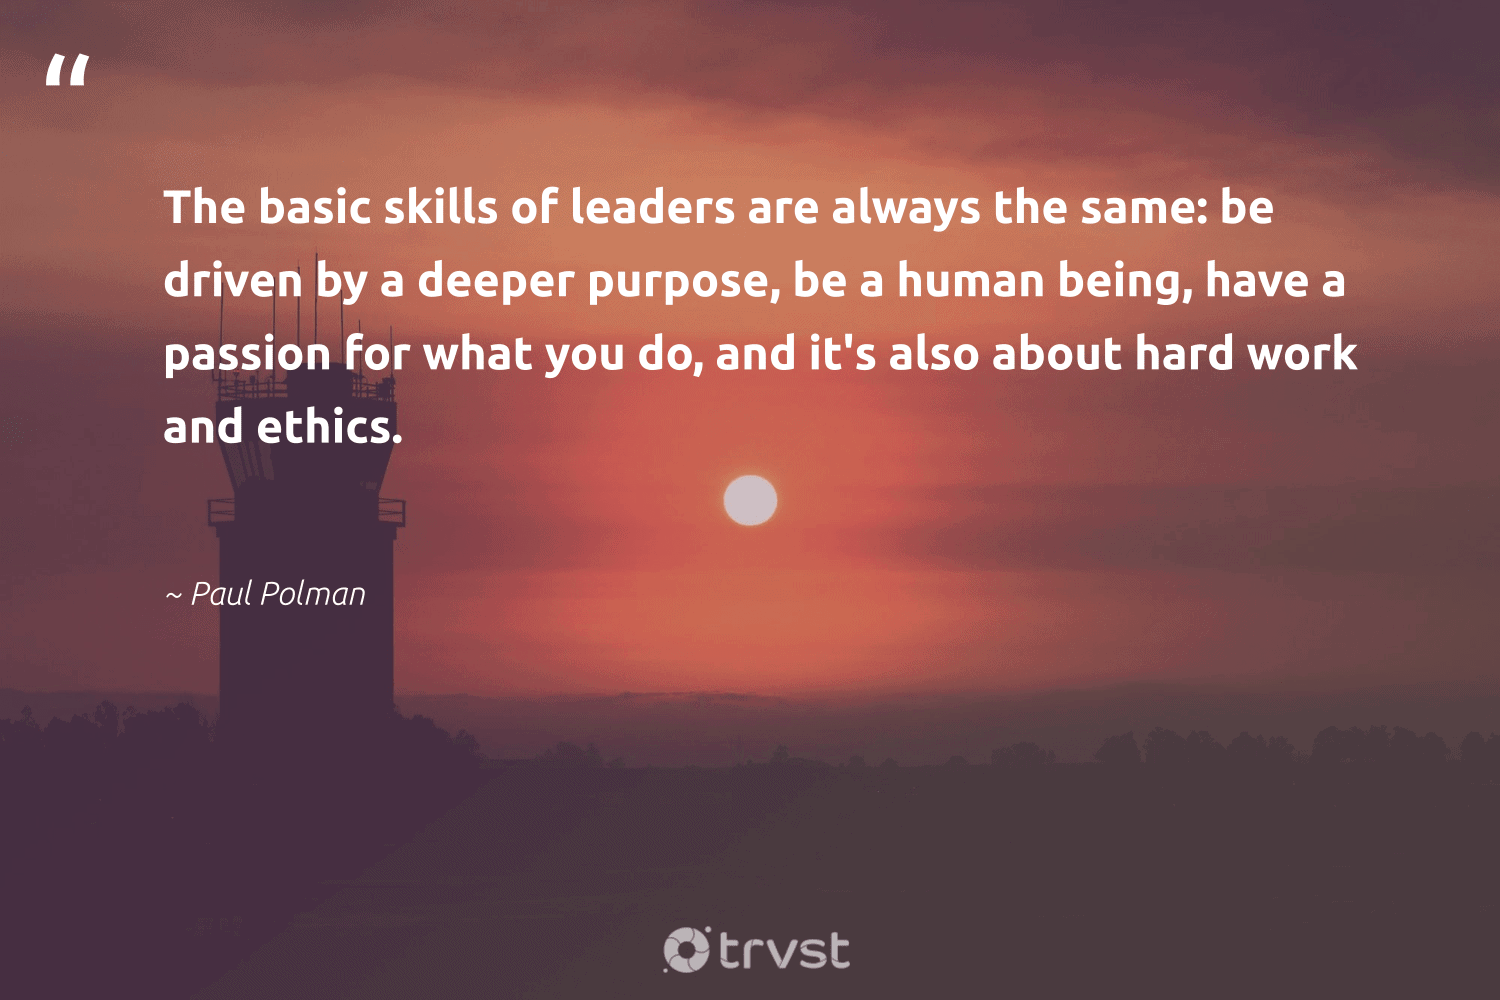 """""""The basic skills of leaders are always the same: be driven by a deeper purpose, be a human being, have a passion for what you do, and it's also about hard work and ethics.""""  - Paul Polman #trvst #quotes #passion #purpose #purposedriven #futureofwork #mindset #takeaction #findpurpose #nevergiveup #togetherwecan #bethechange"""